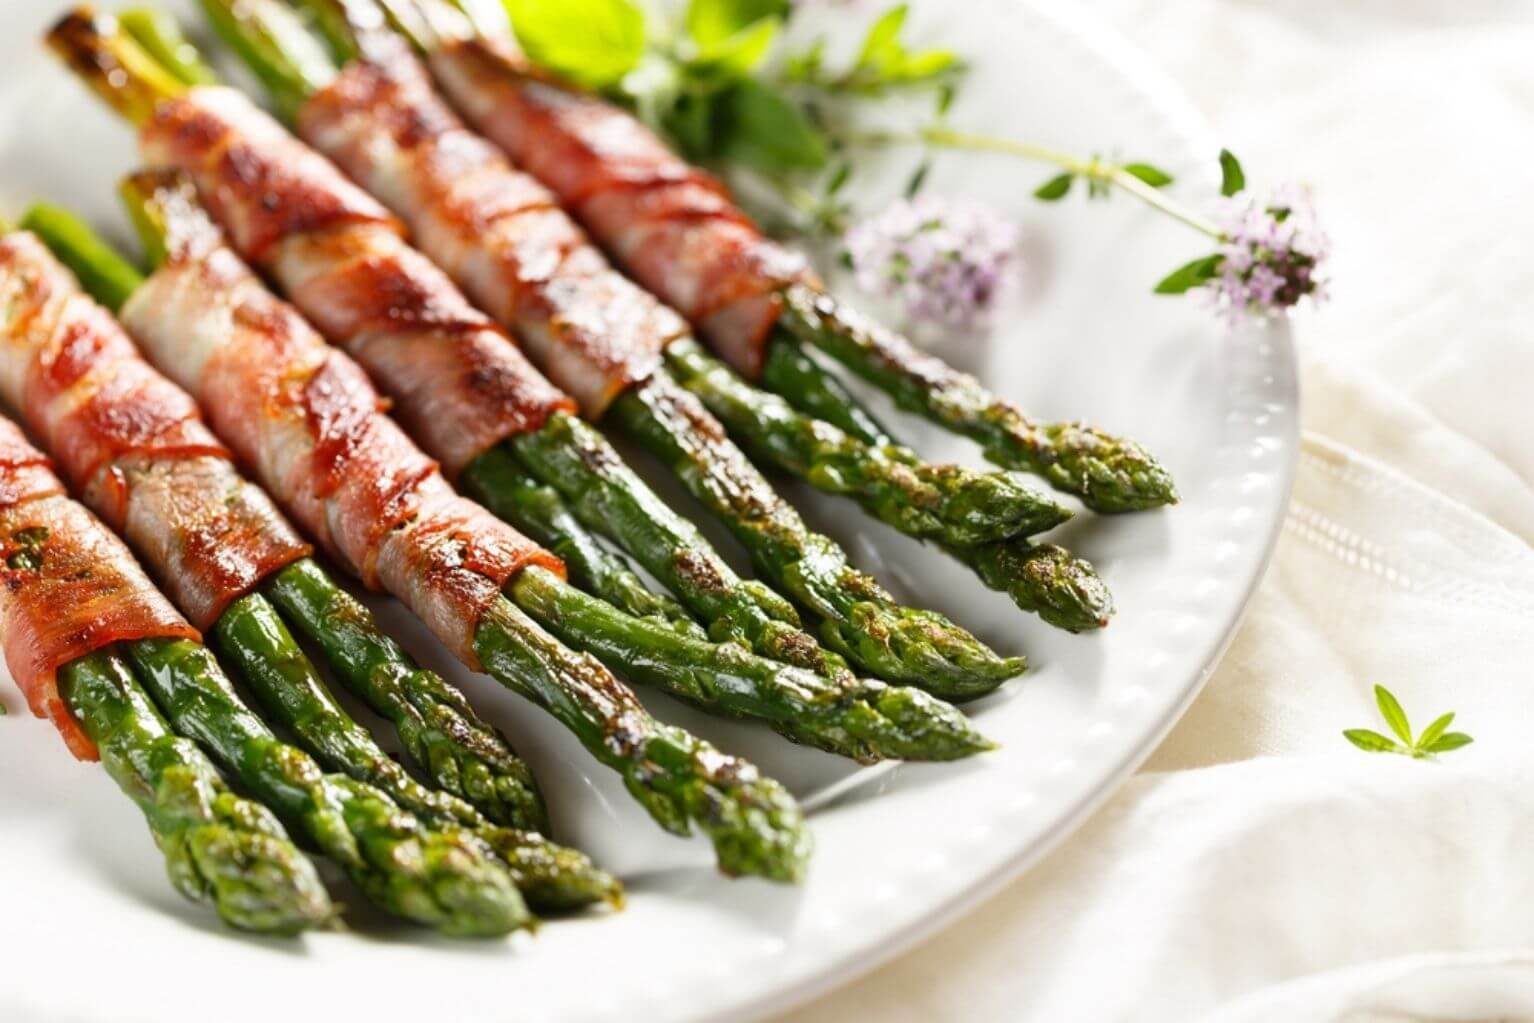 Bacon-wrapped asparagus on a white plate with herb garnishes on a white table cloth.